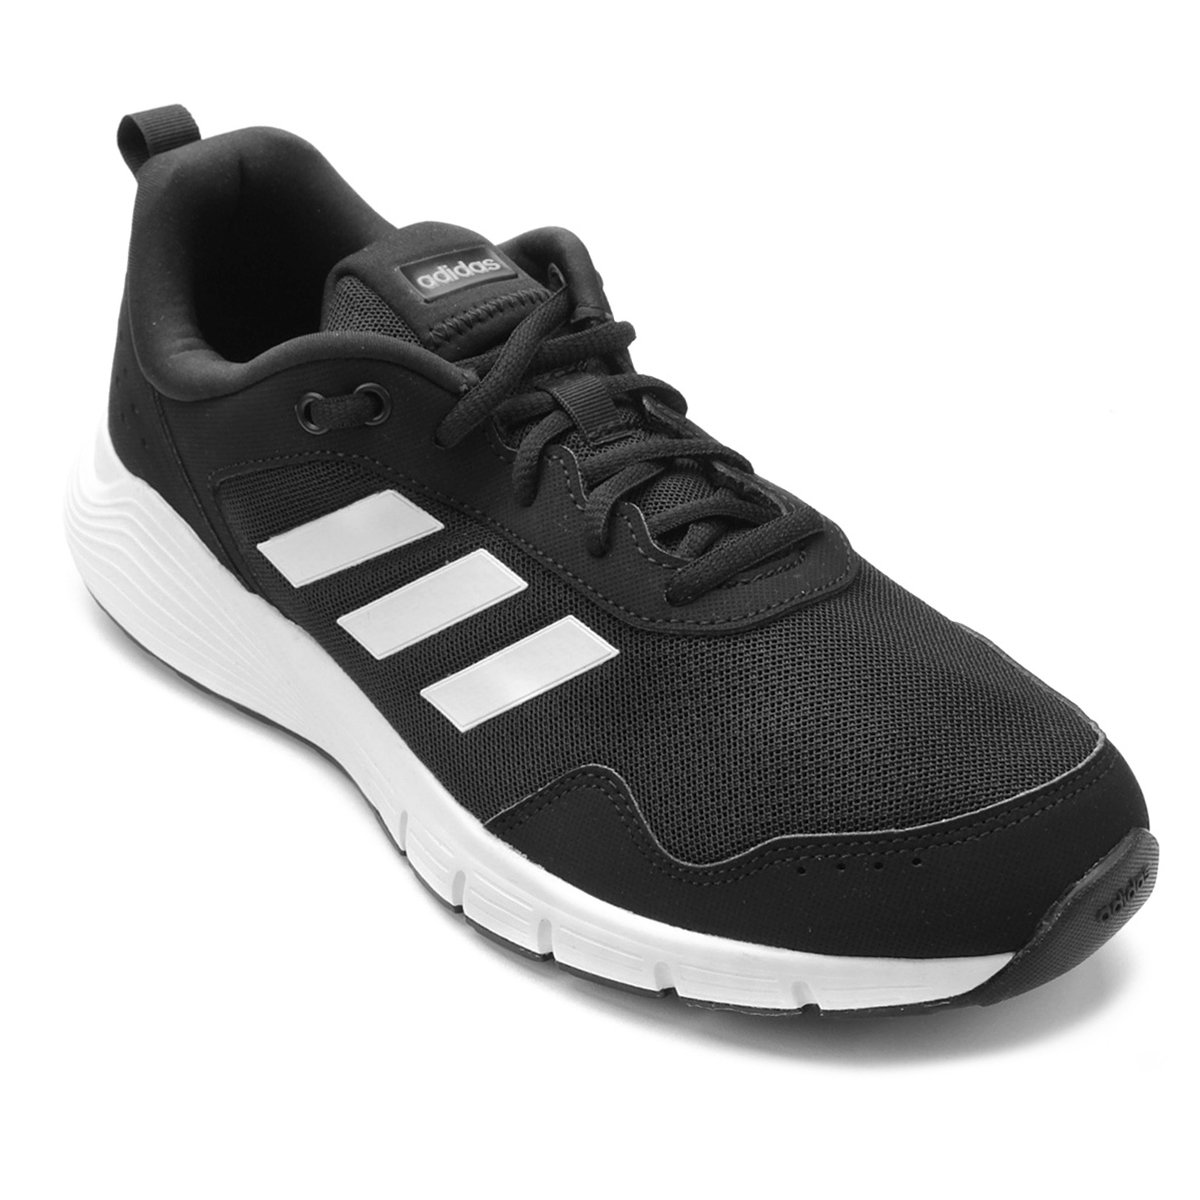 23488be277 where can i buy 33d6a b0e8d adidas cross brancozoom - ategirlcpahub.com